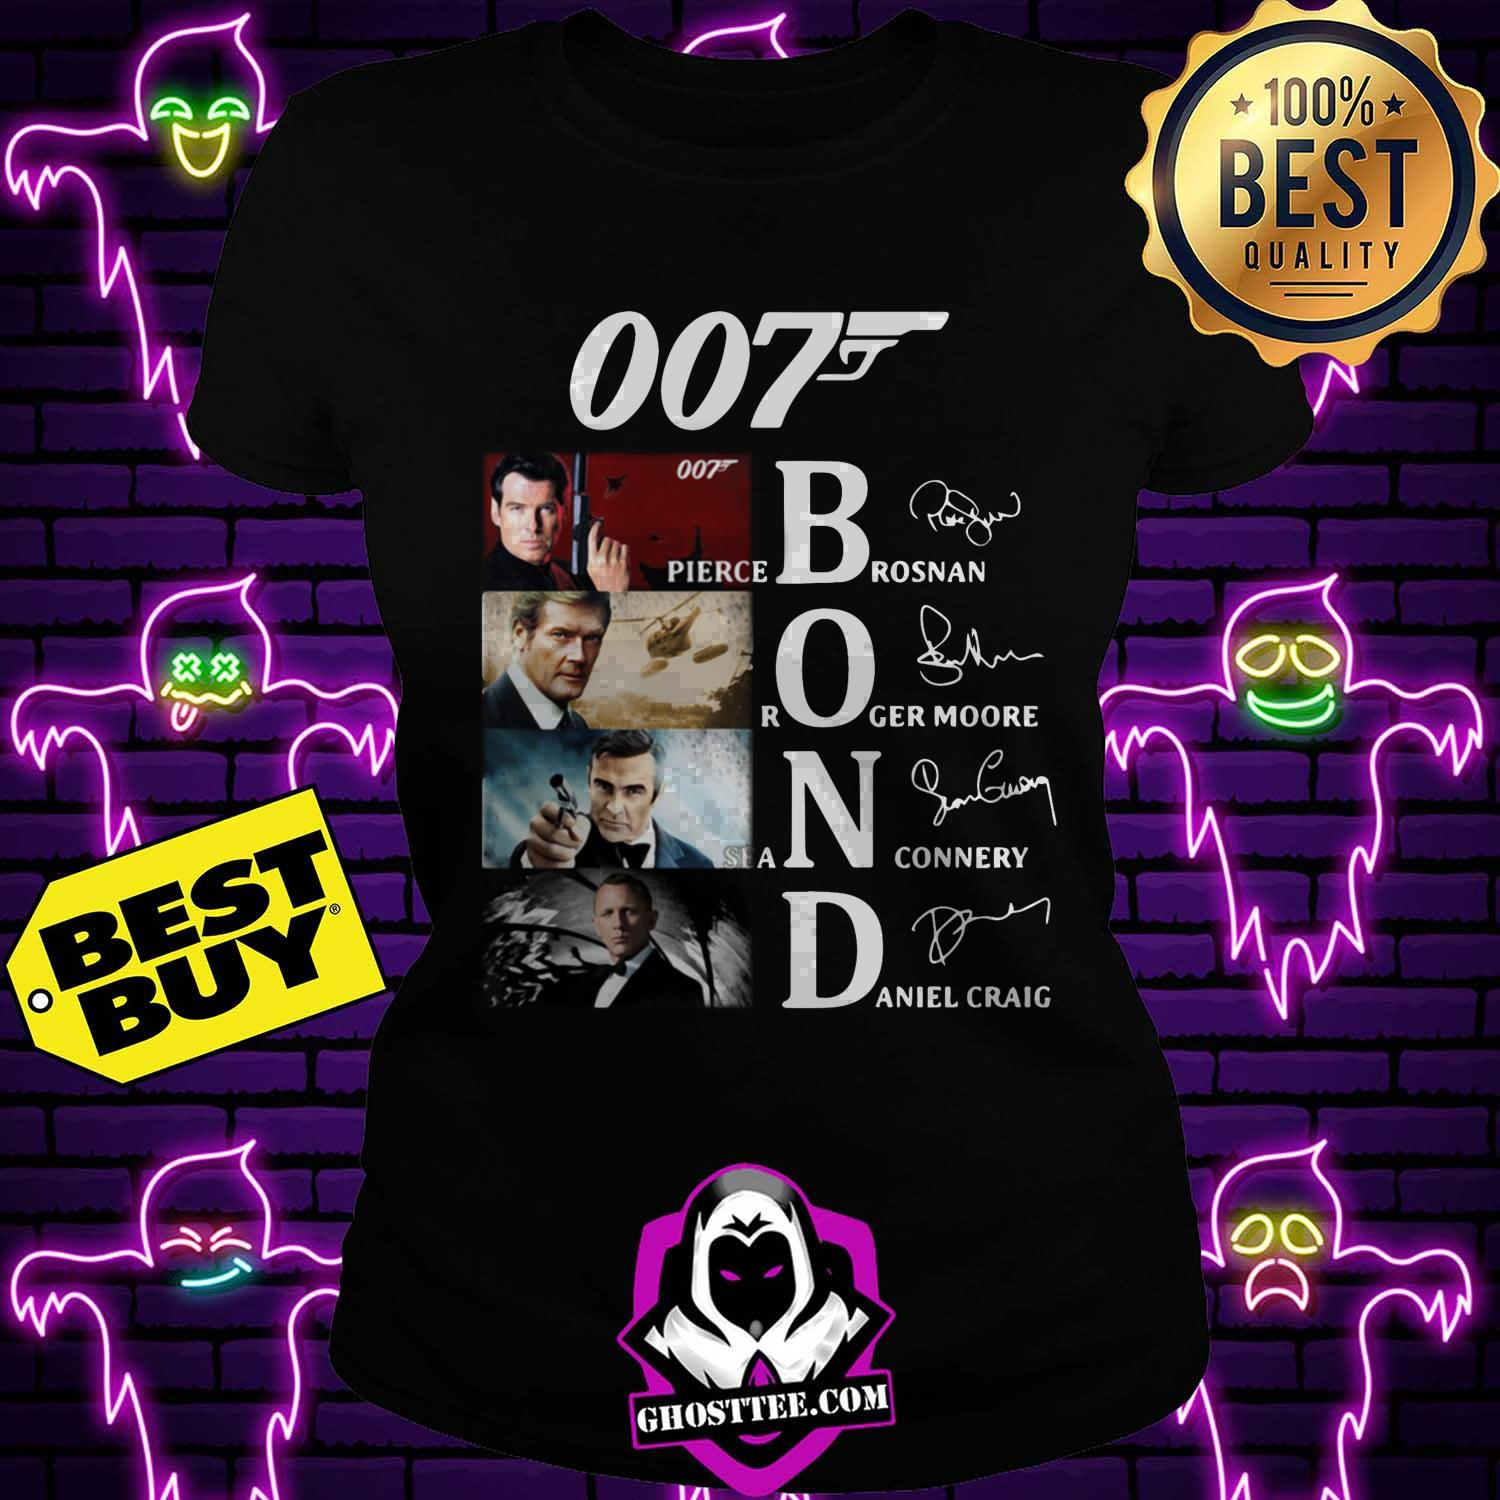 007 james bond signature ladies tee - 007 James Bond signature shirt sweater